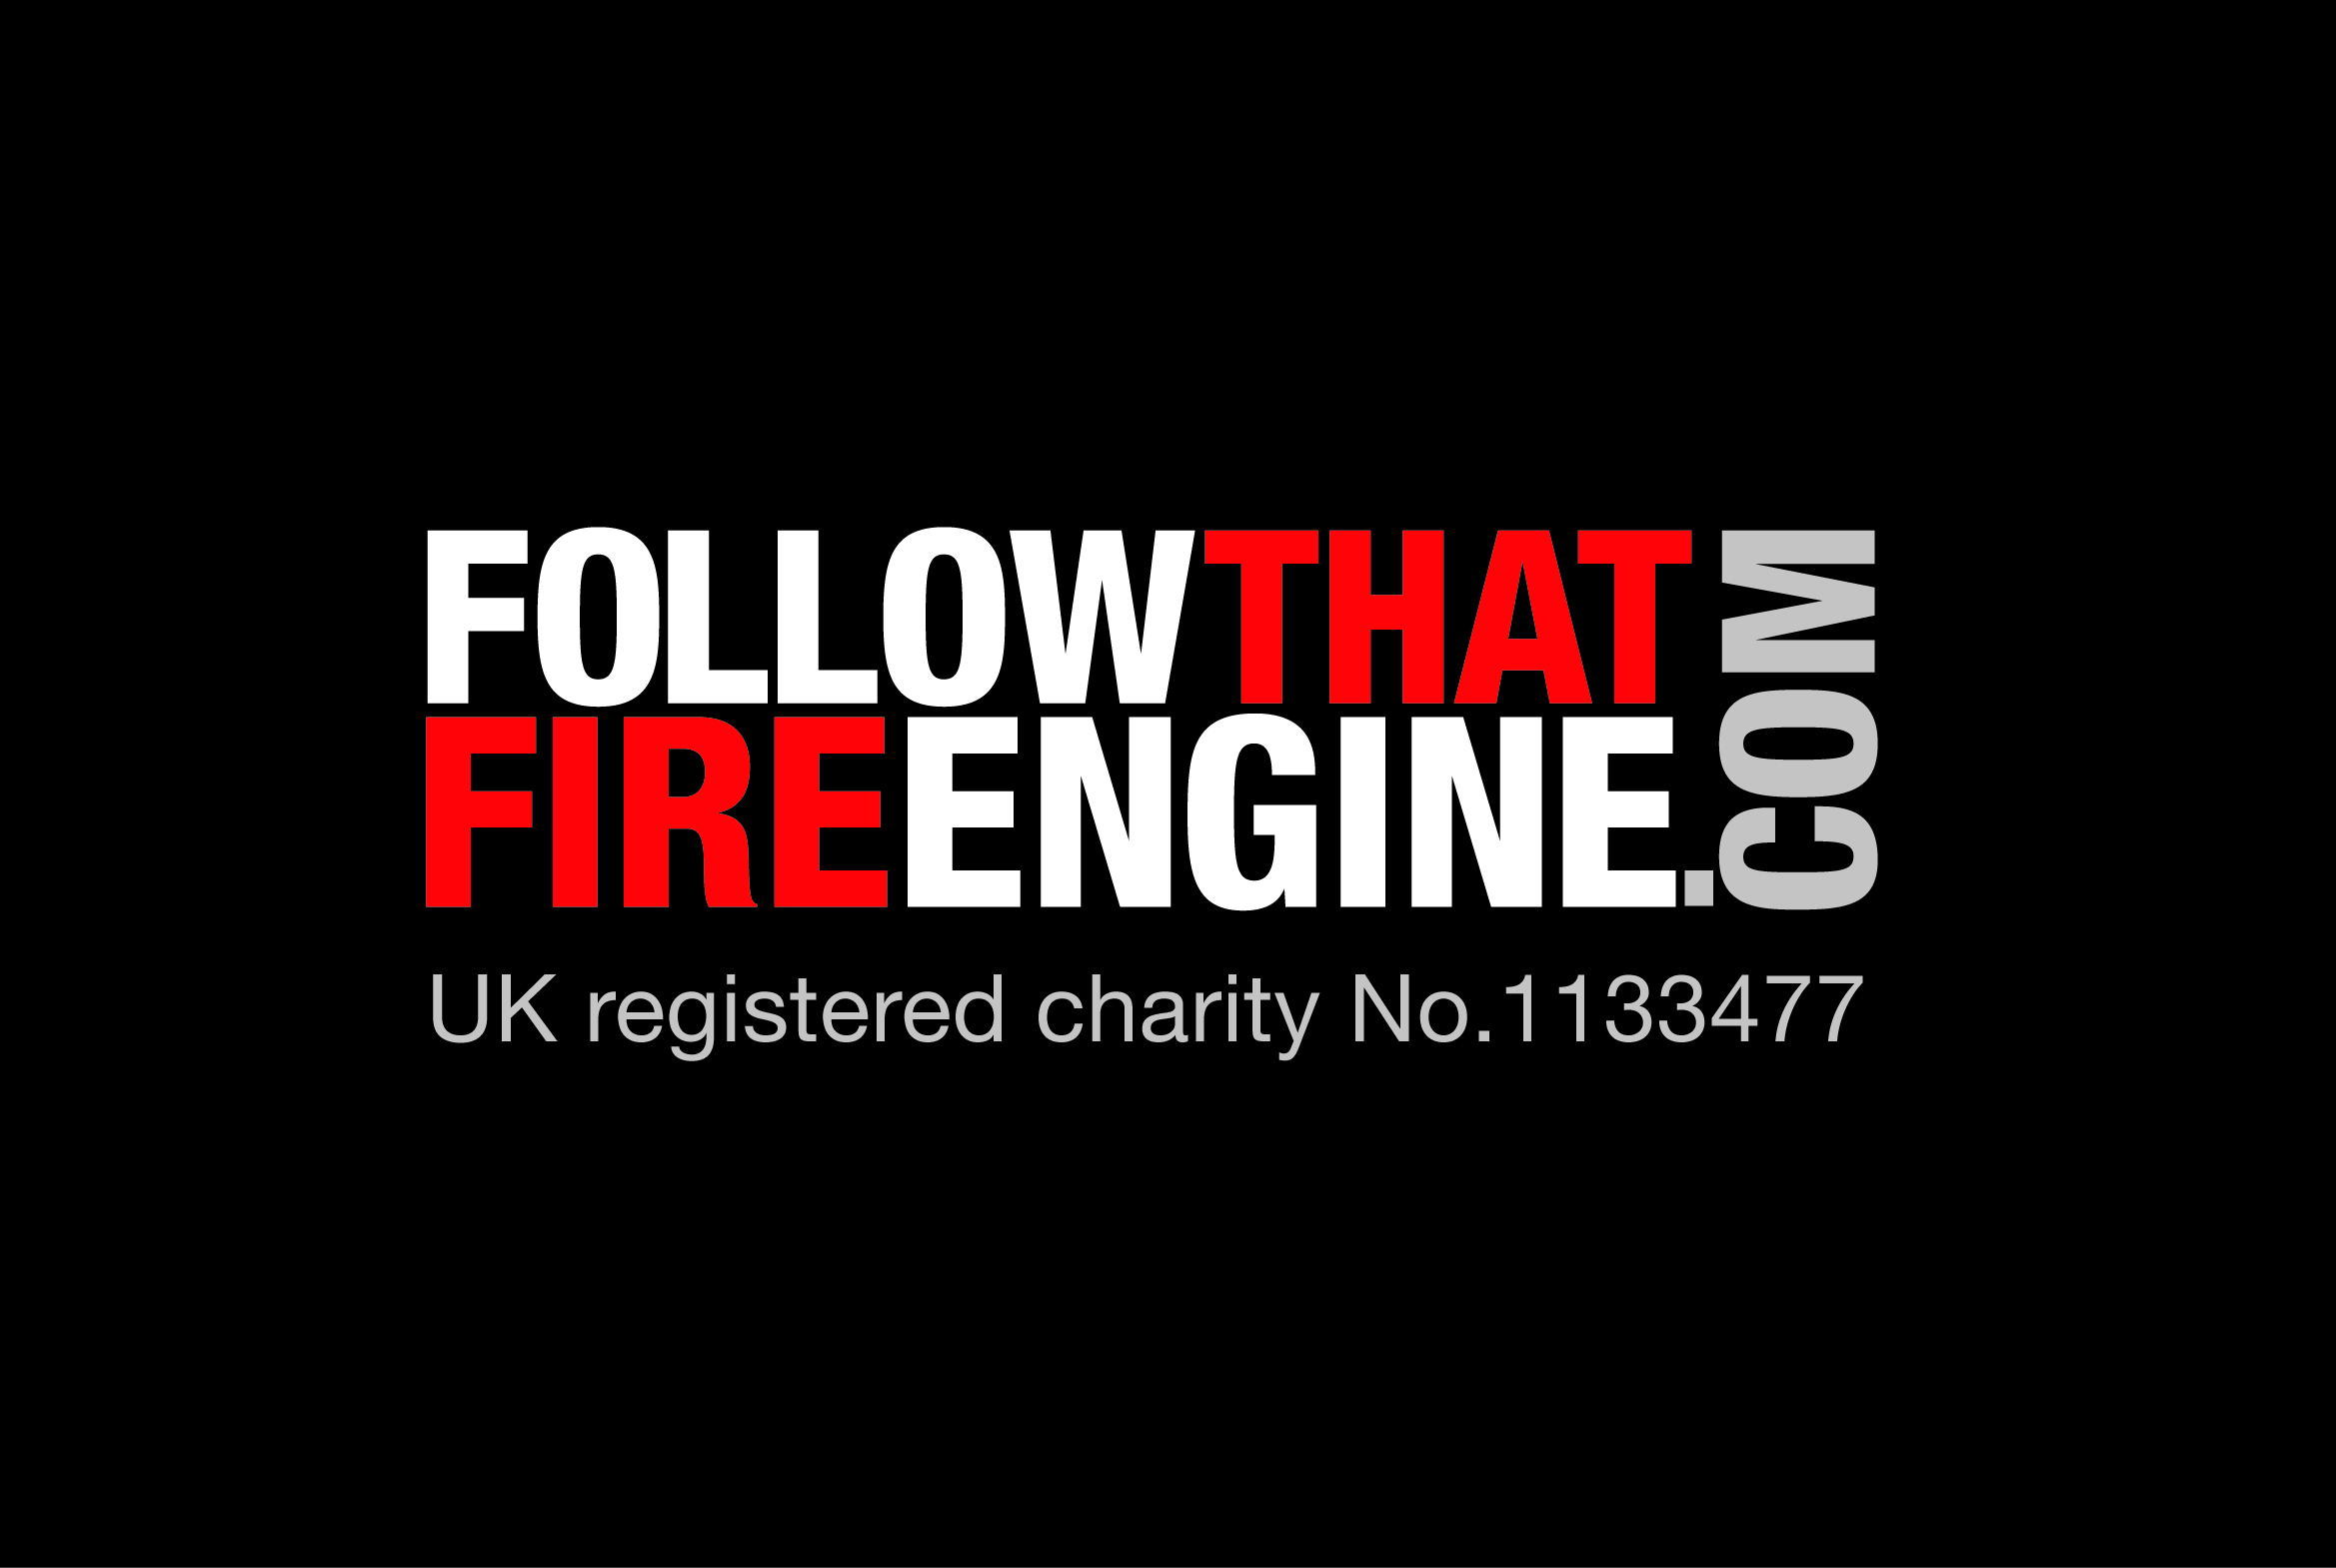 FOLLOW THAT FIRE ENGINE Logo without engine (for red background)